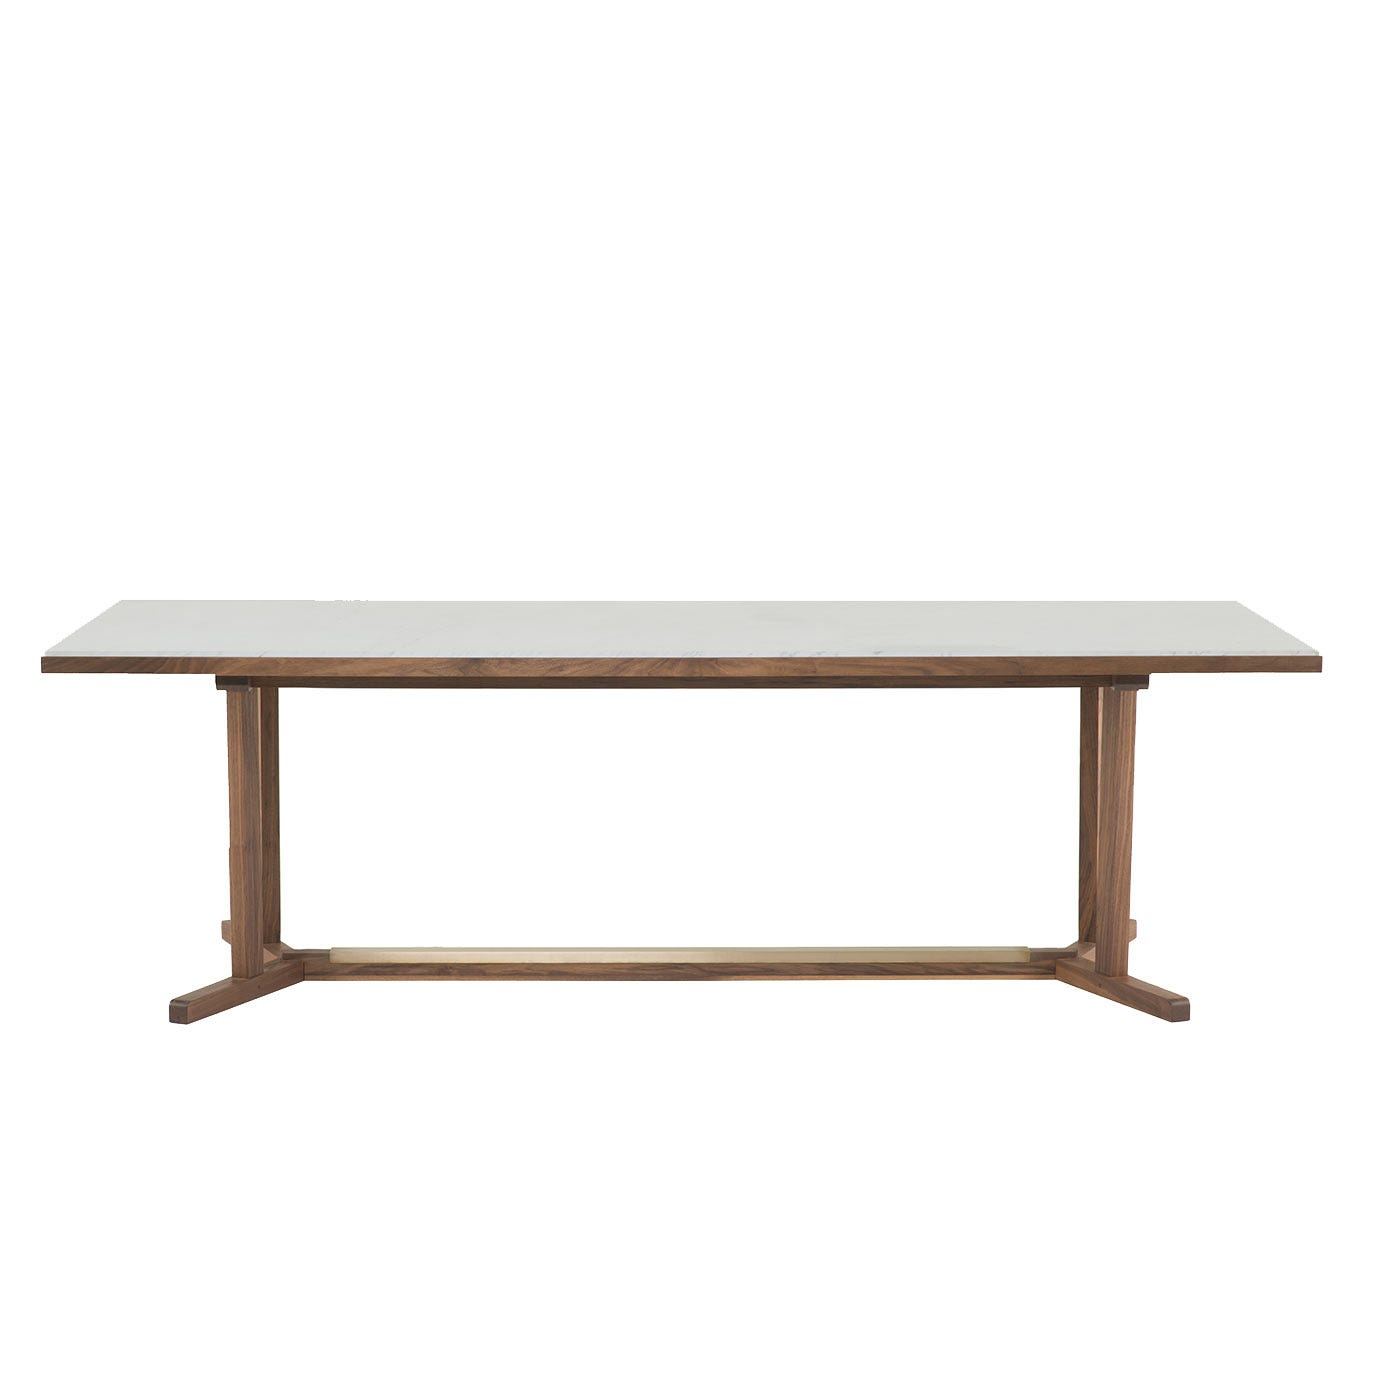 Shaker Dining Table 6-8 Seater Walnut, Marble Top